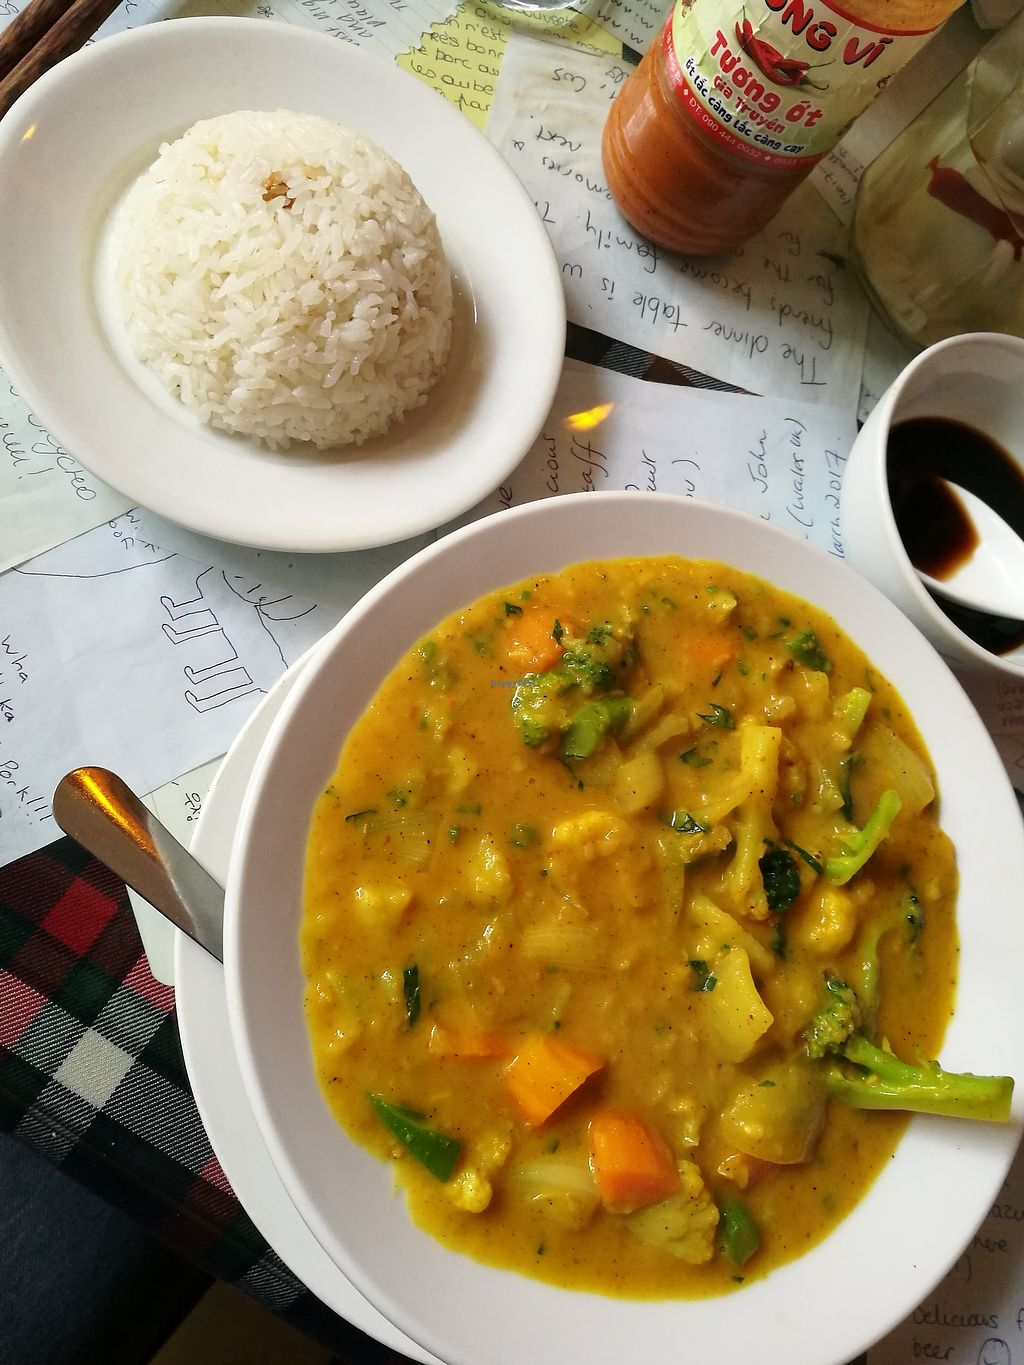 """Photo of Aubergine Cafe  by <a href=""""/members/profile/VolleyMacaroni"""">VolleyMacaroni</a> <br/>Vegetable Curry <br/> April 5, 2018  - <a href='/contact/abuse/image/42628/380964'>Report</a>"""